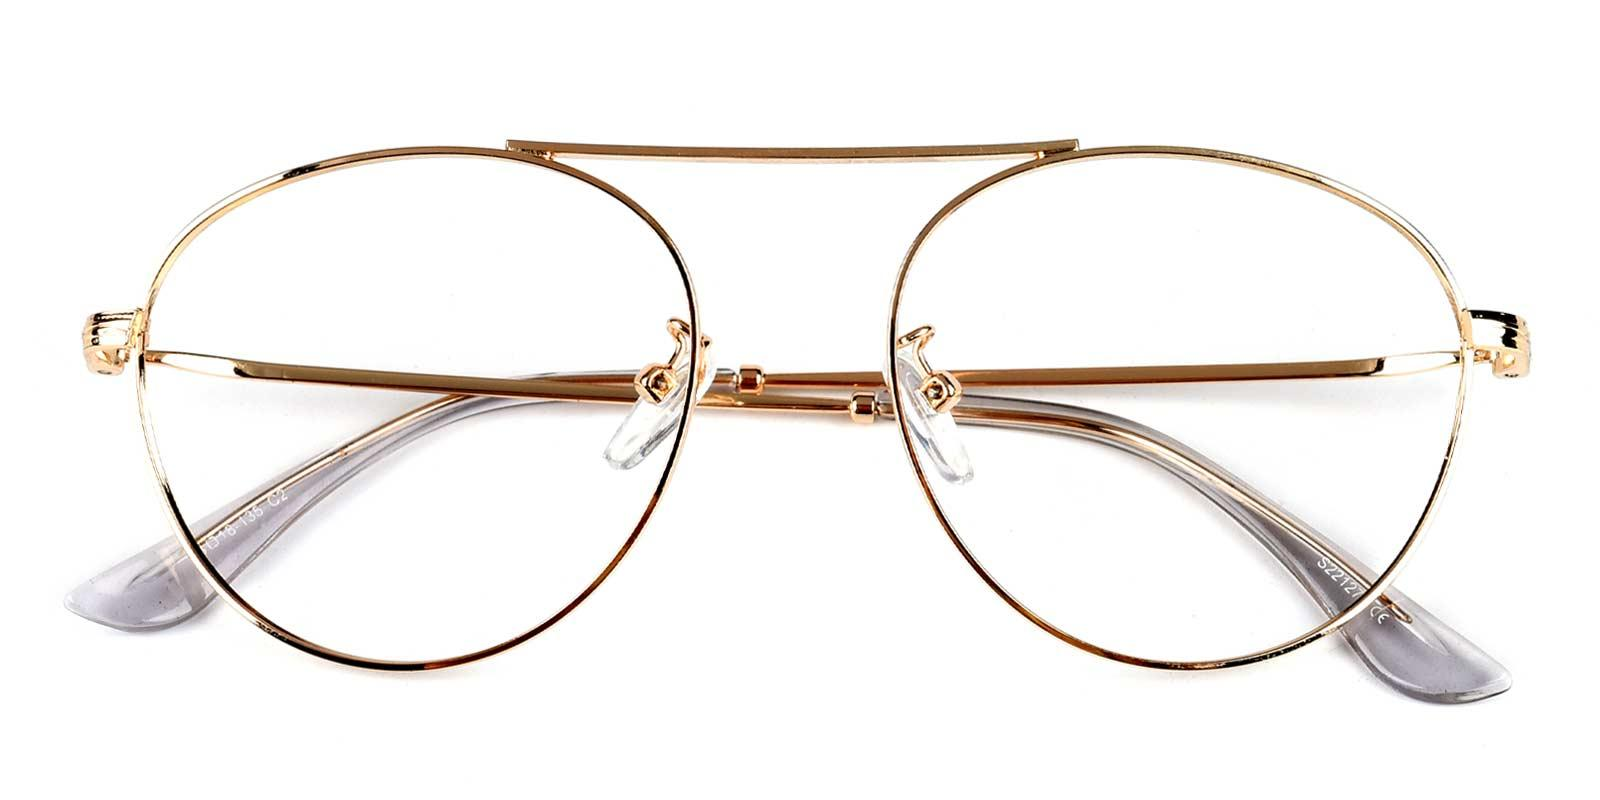 Fleybean-Gold-Aviator-Metal-Eyeglasses-detail